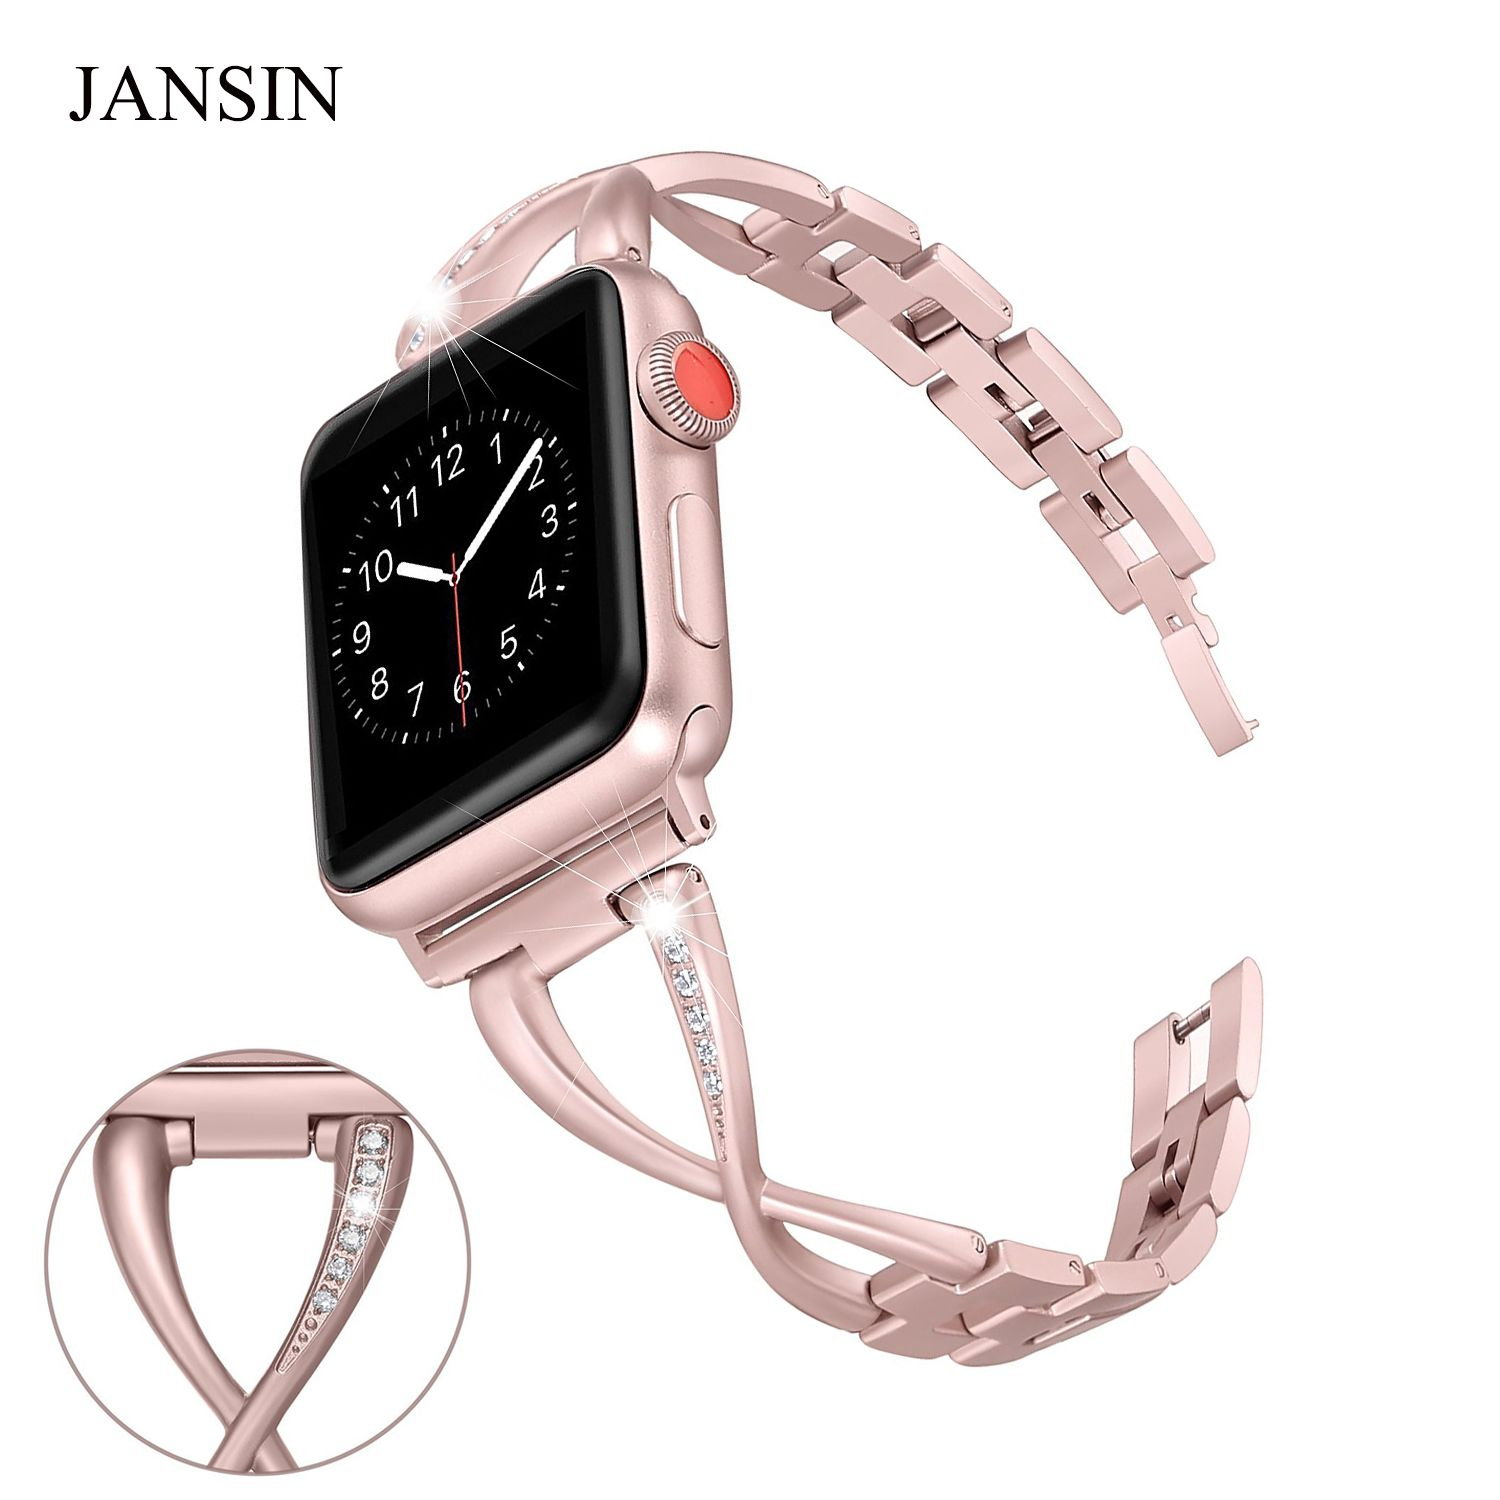 JANSIN Women Watch band for Apple Watch Bands 38mm/42mm Adjustable Stainless <font><b>Steel</b></font> Strap for iwatch series 3 2 1 Bracelet